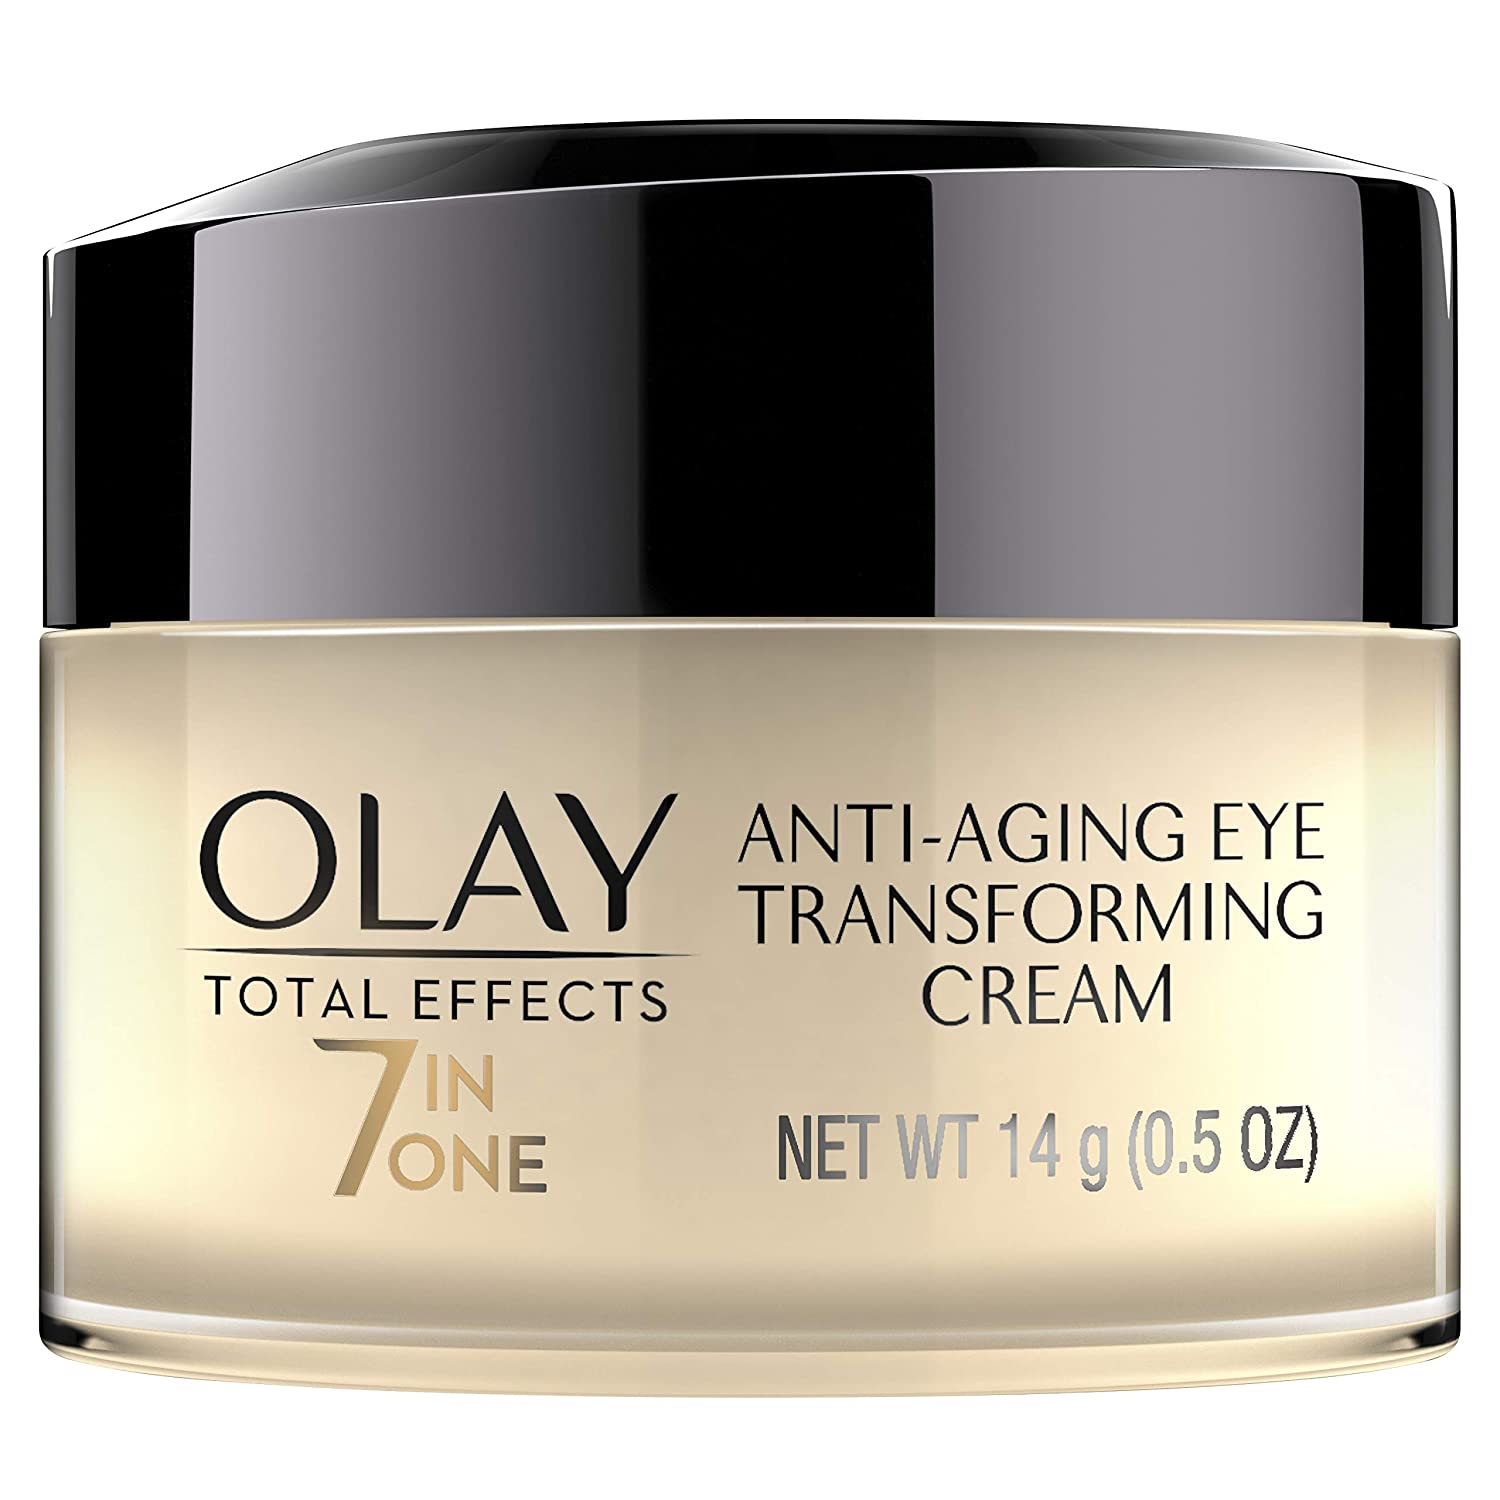 Olay Total Effects 7-in-one Anti-Aging Transforming